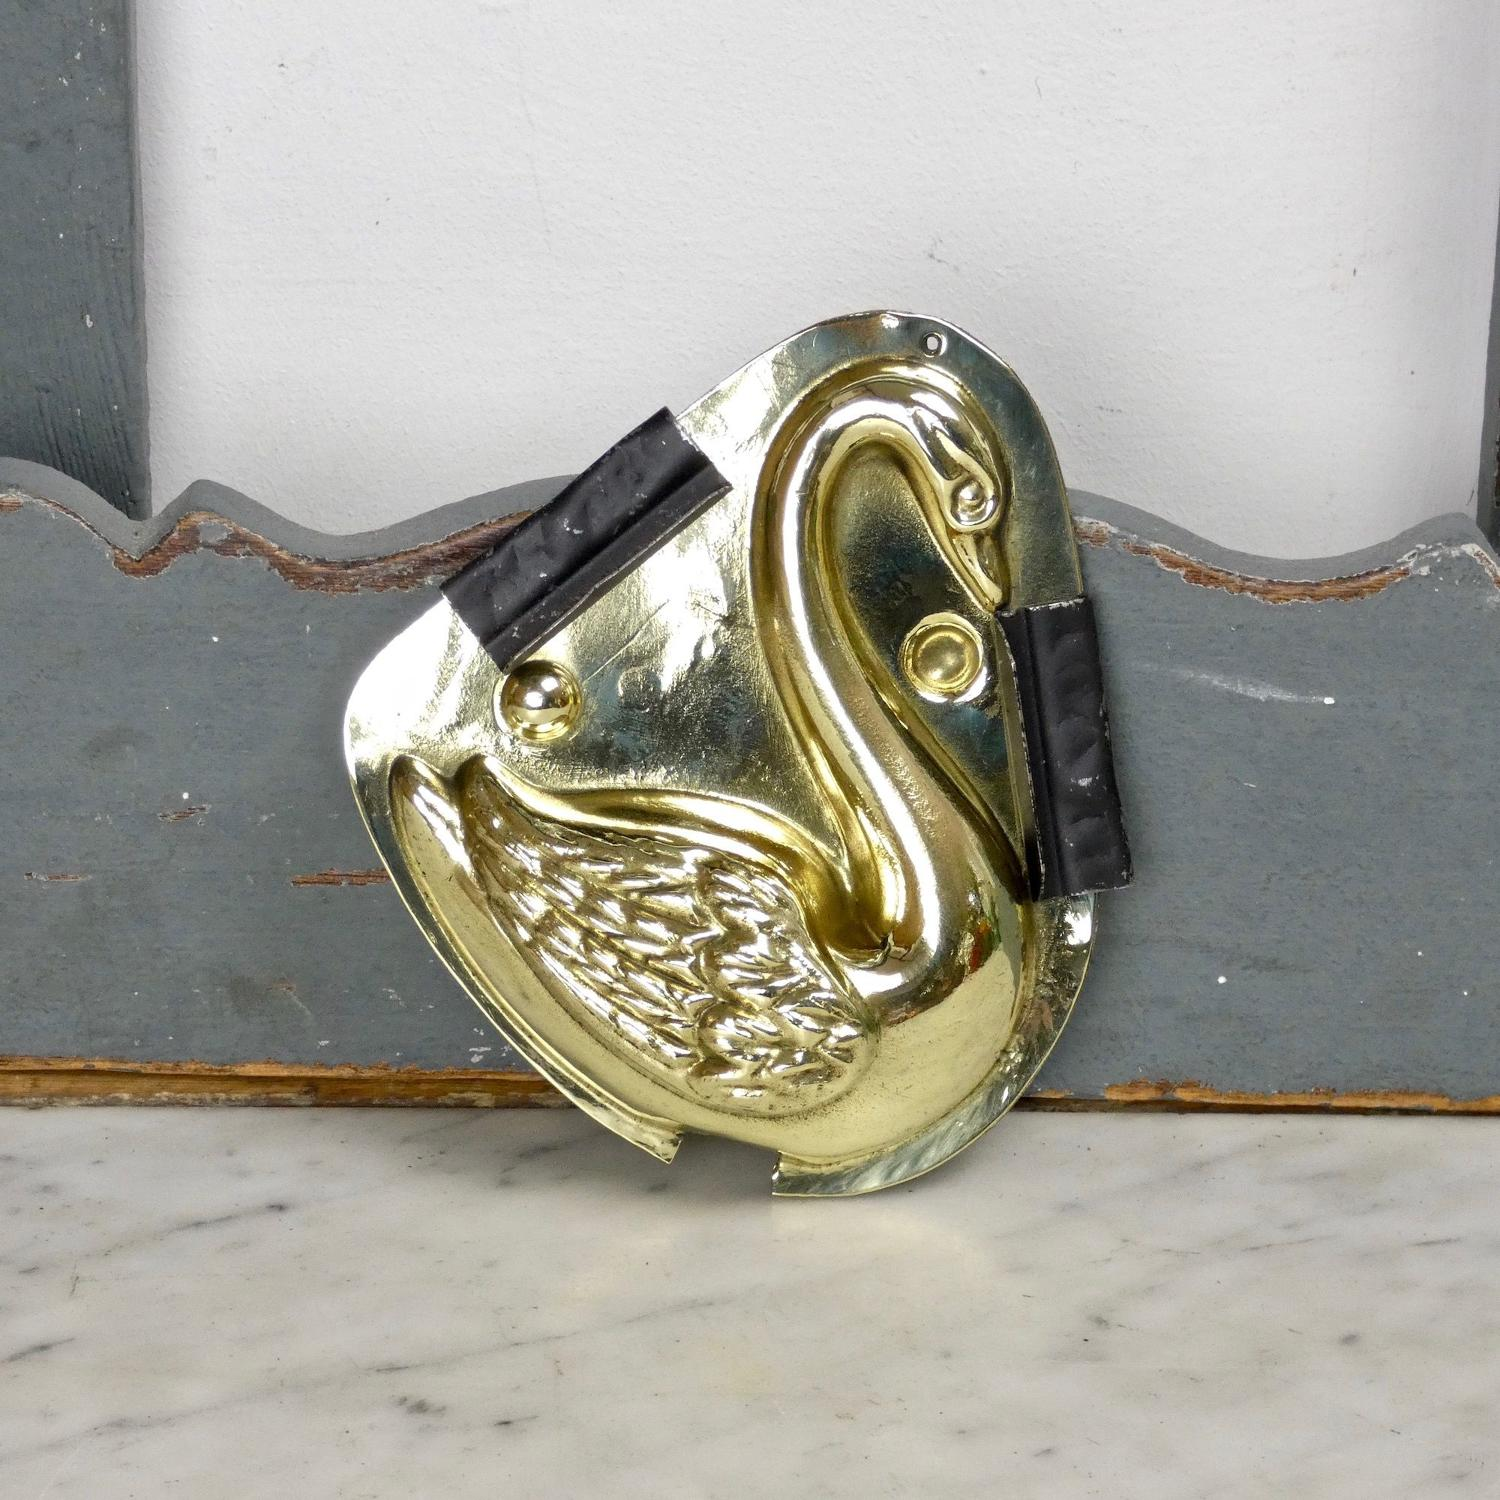 Brass nougat mould of a swan